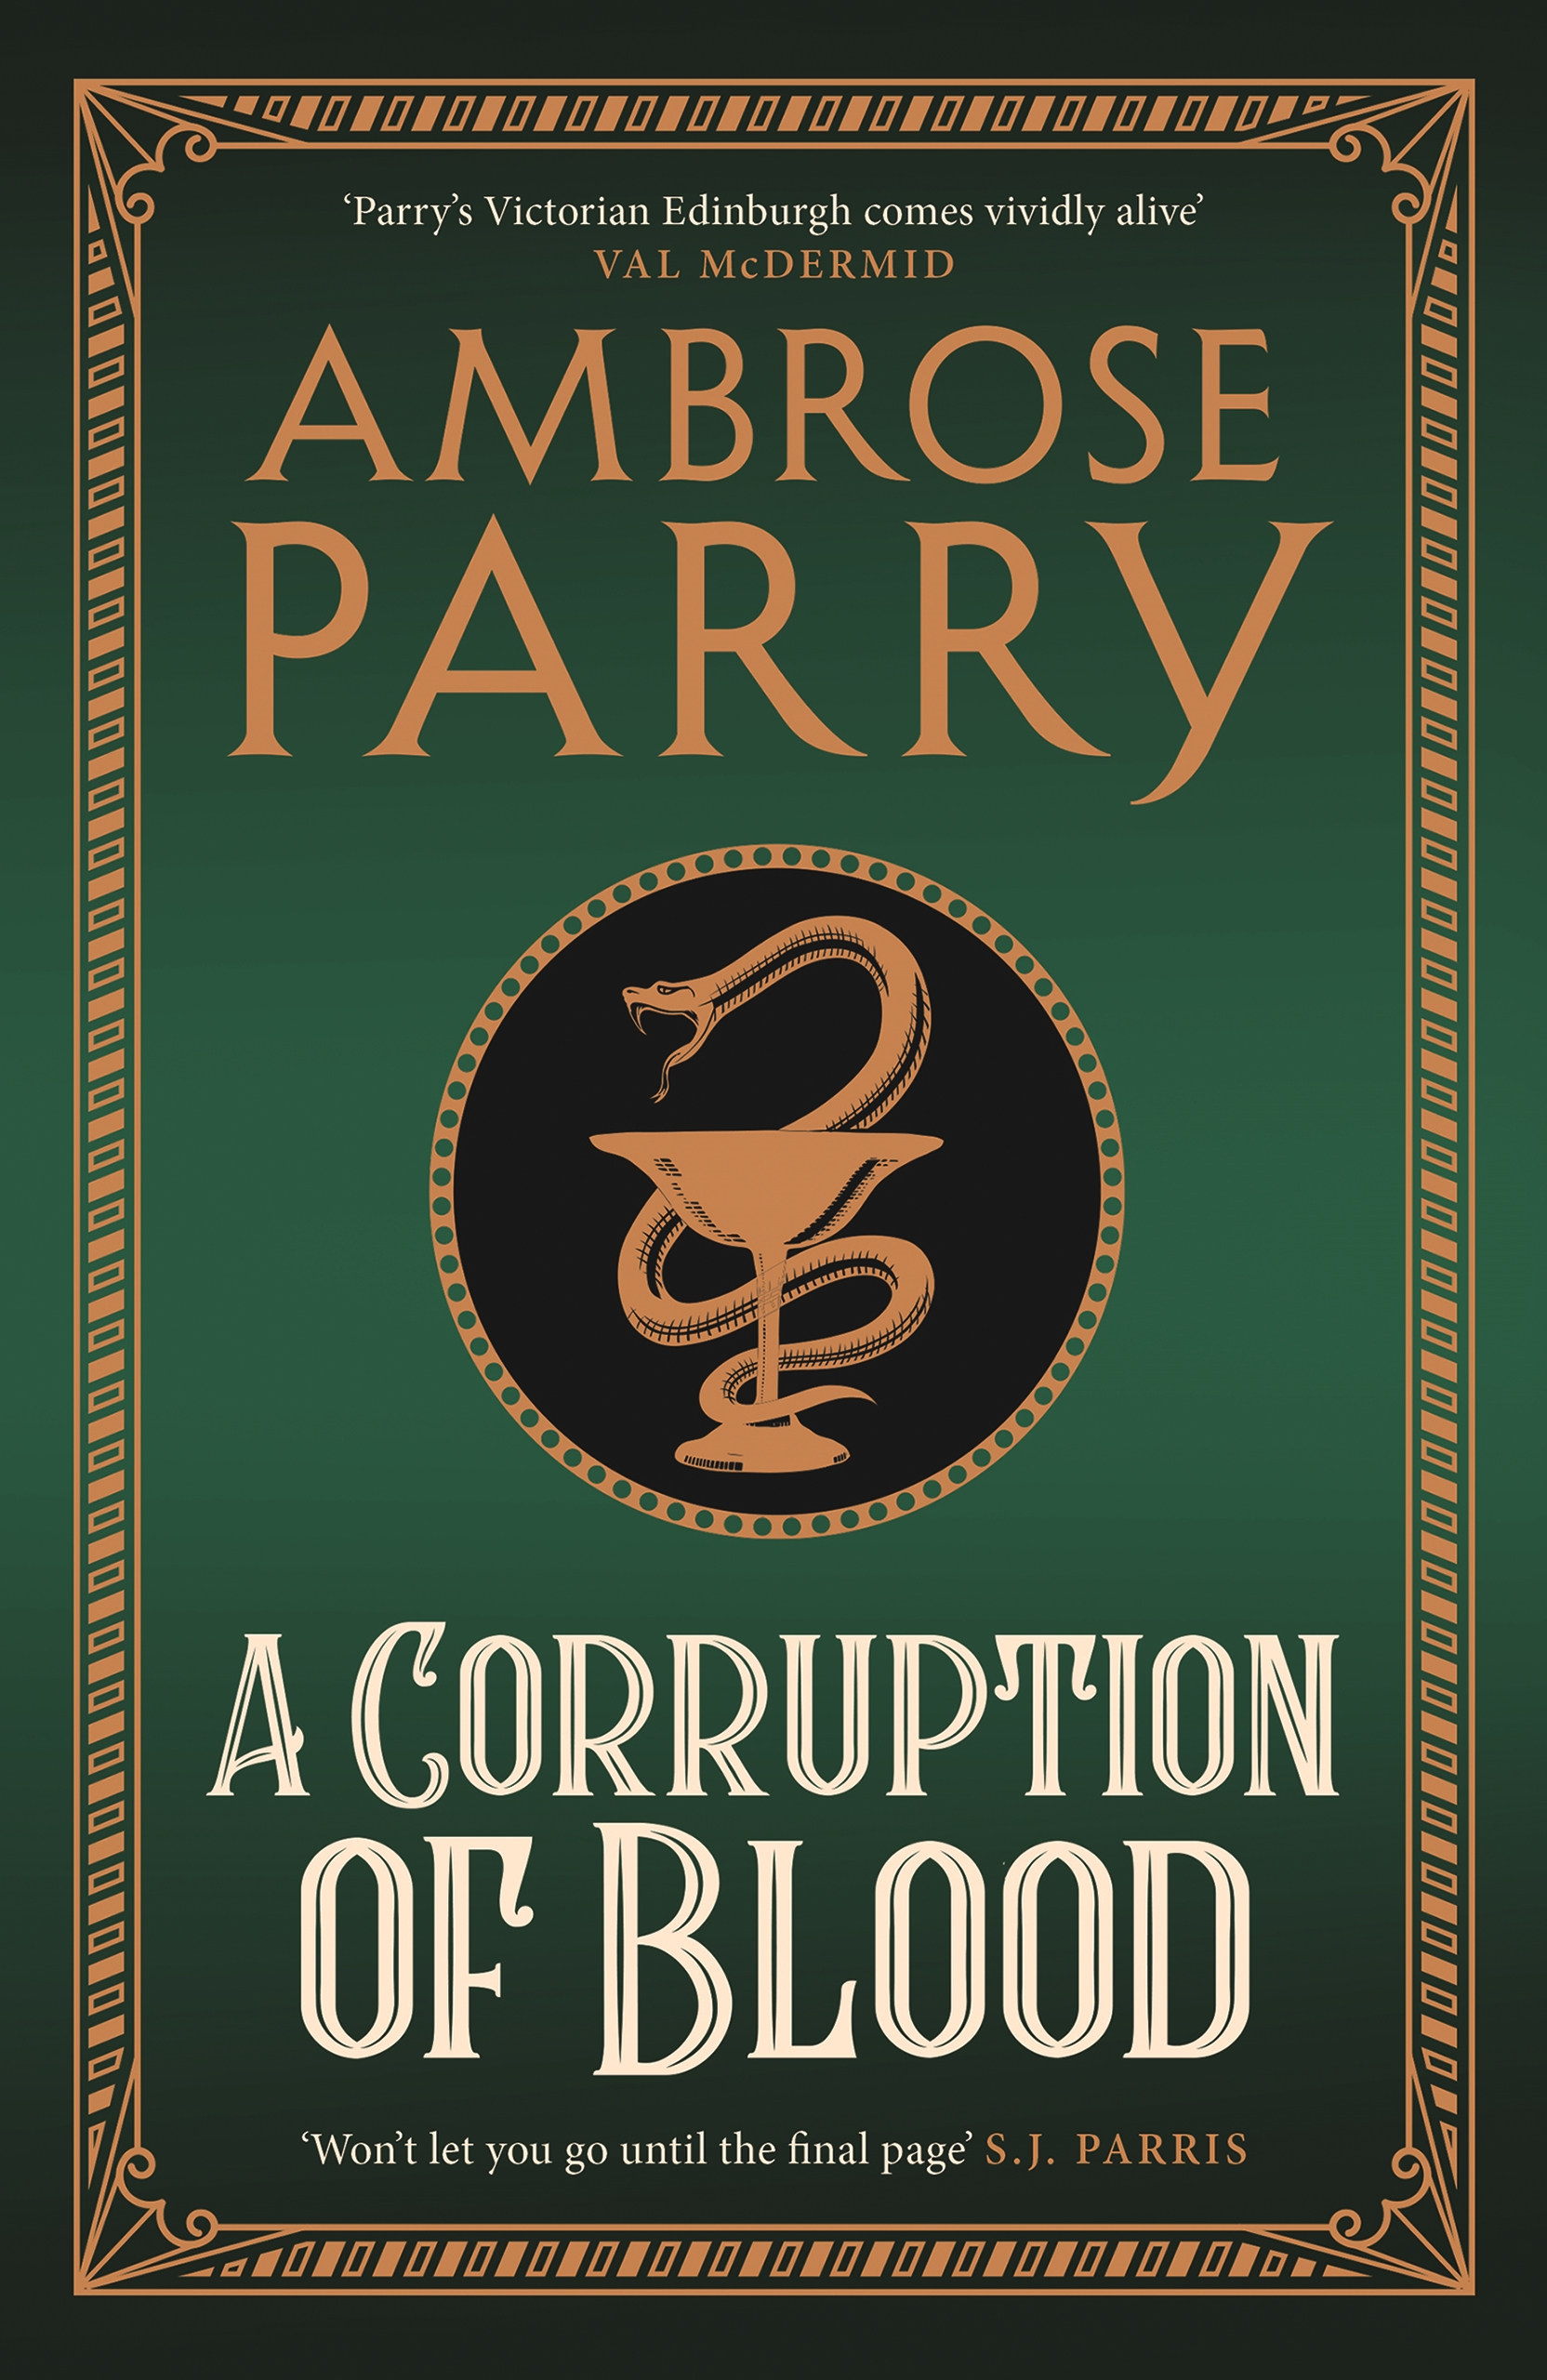 Signed Edition: A Corruption of Blood